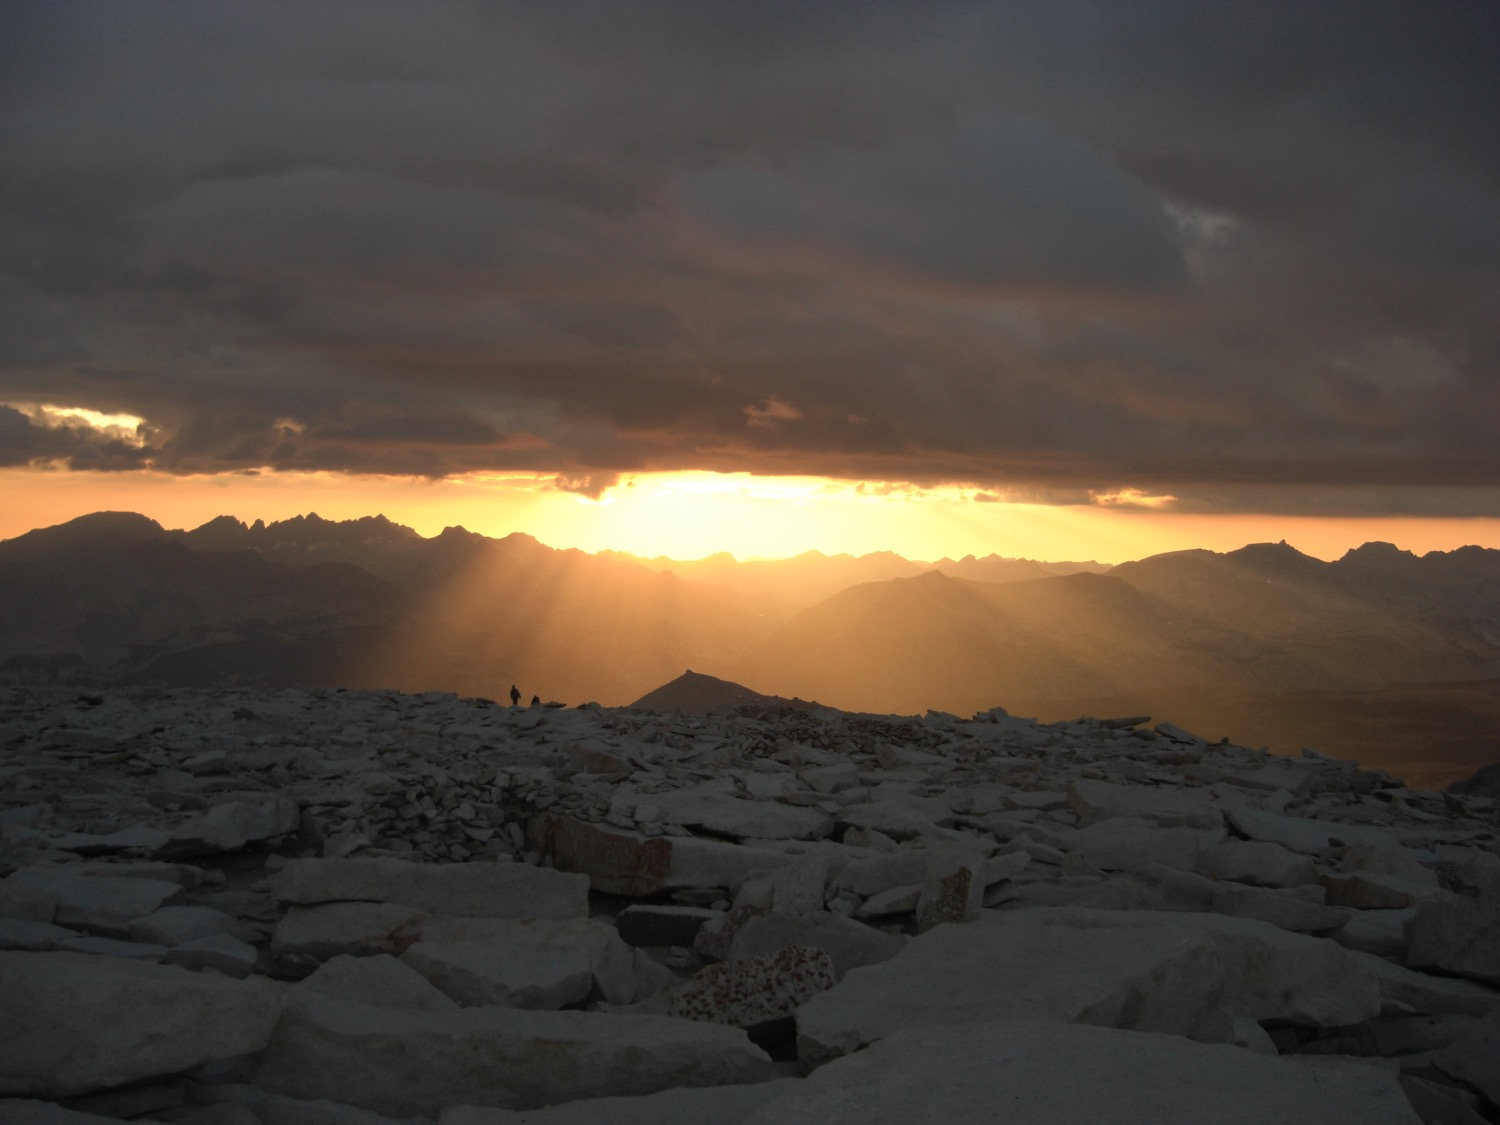 Mount Whitney summit at sunset. High Sierra Mountains, California. (Photo by Emily Stifler Wolfe)